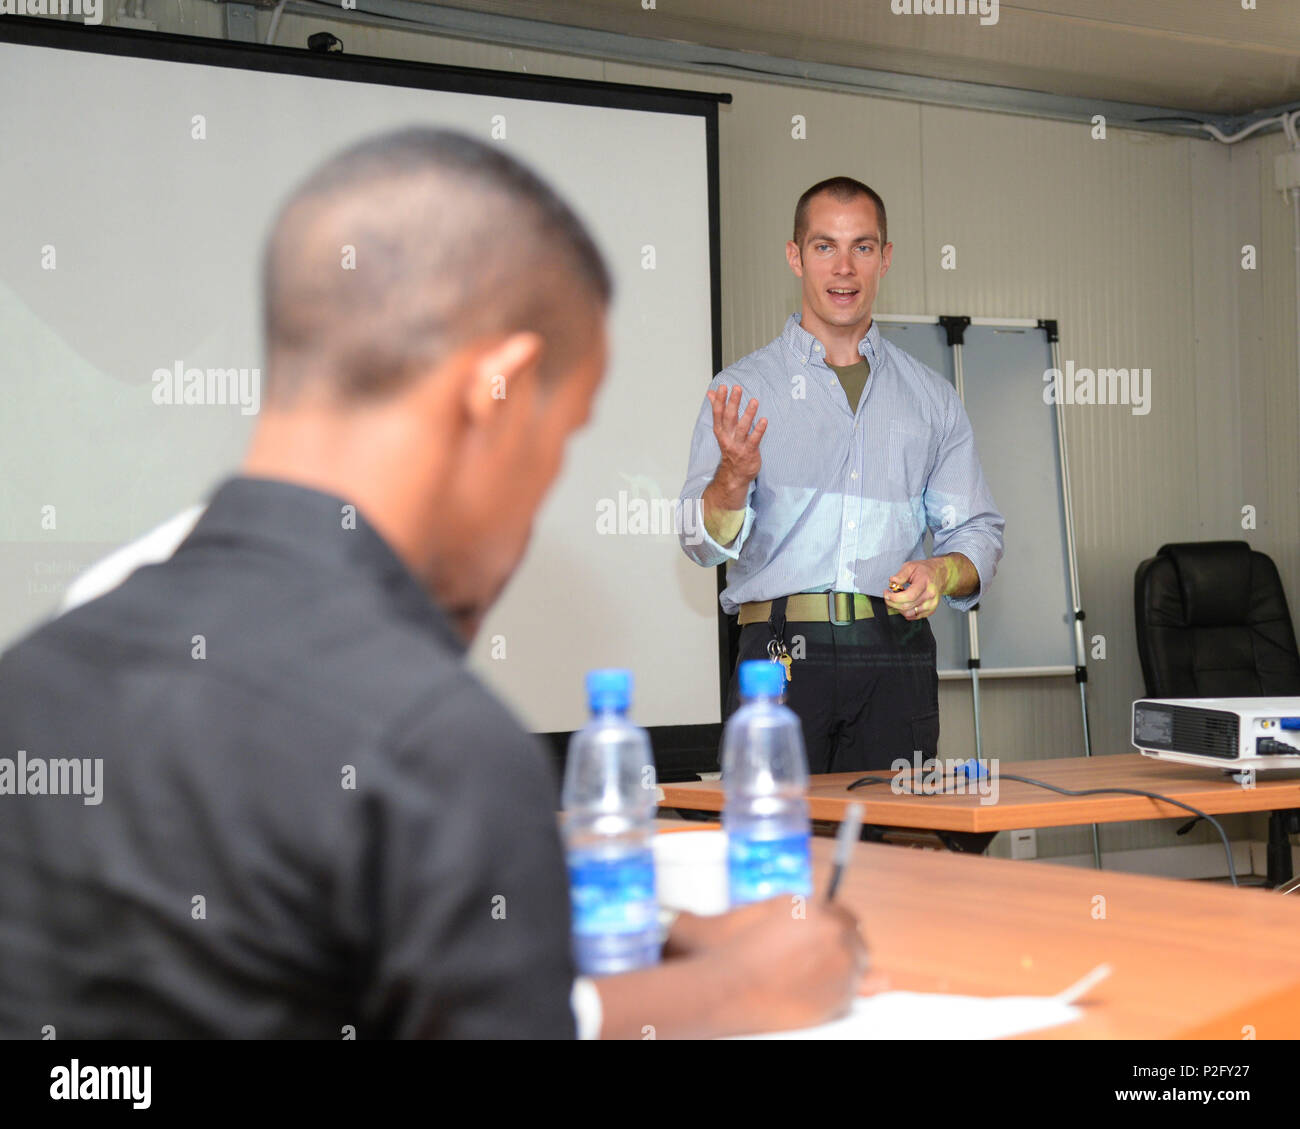 U.S. Army Maj. Andrew Mosier, 403rd Civil Affairs Battalion physician, instructs nearly 20 Somali doctors during the Continuing Medical Education Conference in Mogadishu, Somalia, Sept. 14, 2016. The conference covered topics concerning treatment for different types of broken bones, swollen lymph nodes, and arthritis, and they also practiced reading radiographs. (U.S. Air Force photo by Staff Sgt. Benjamin Raughton) - Stock Image